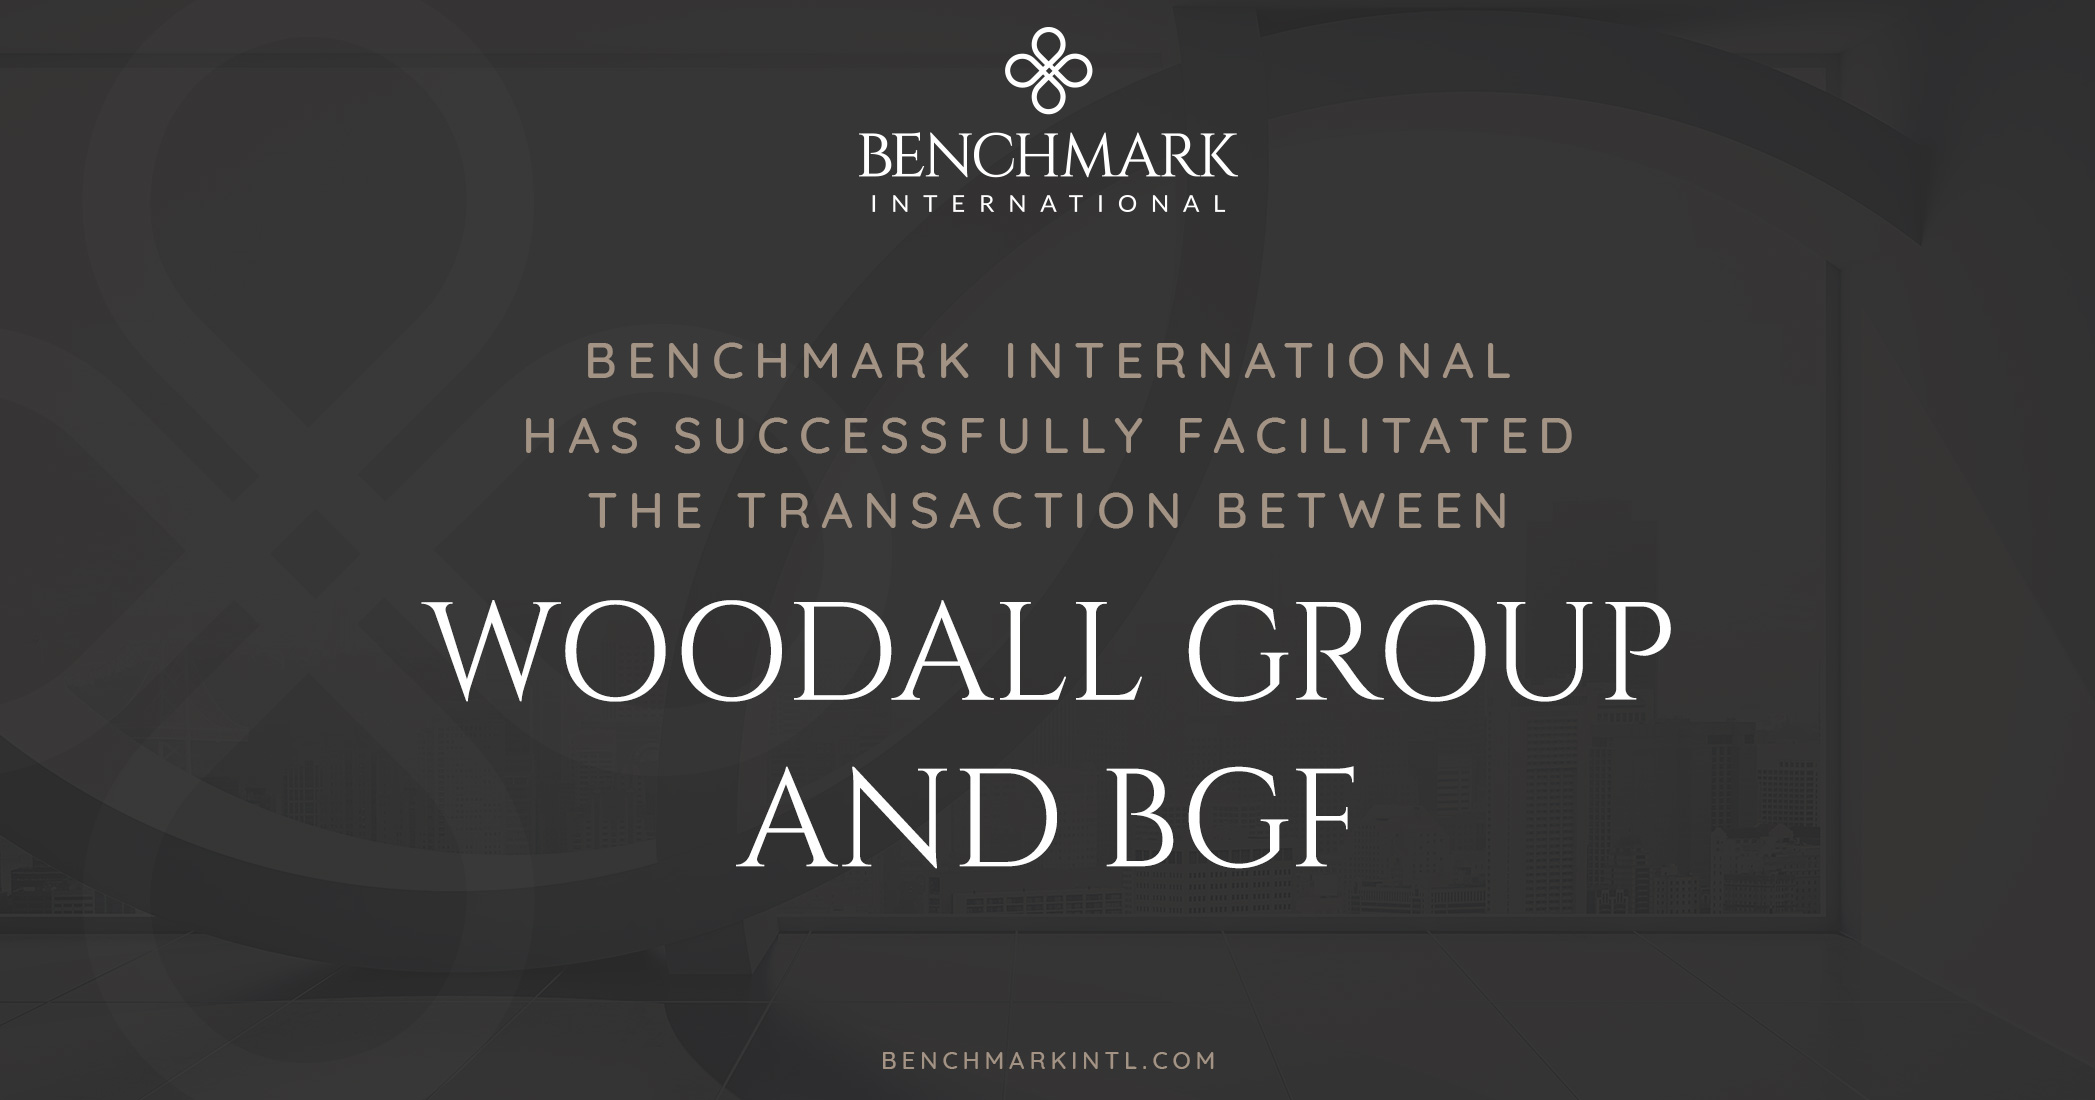 Benchmark International Successfully Facilitated the Transaction Between Woodall Group and BGF